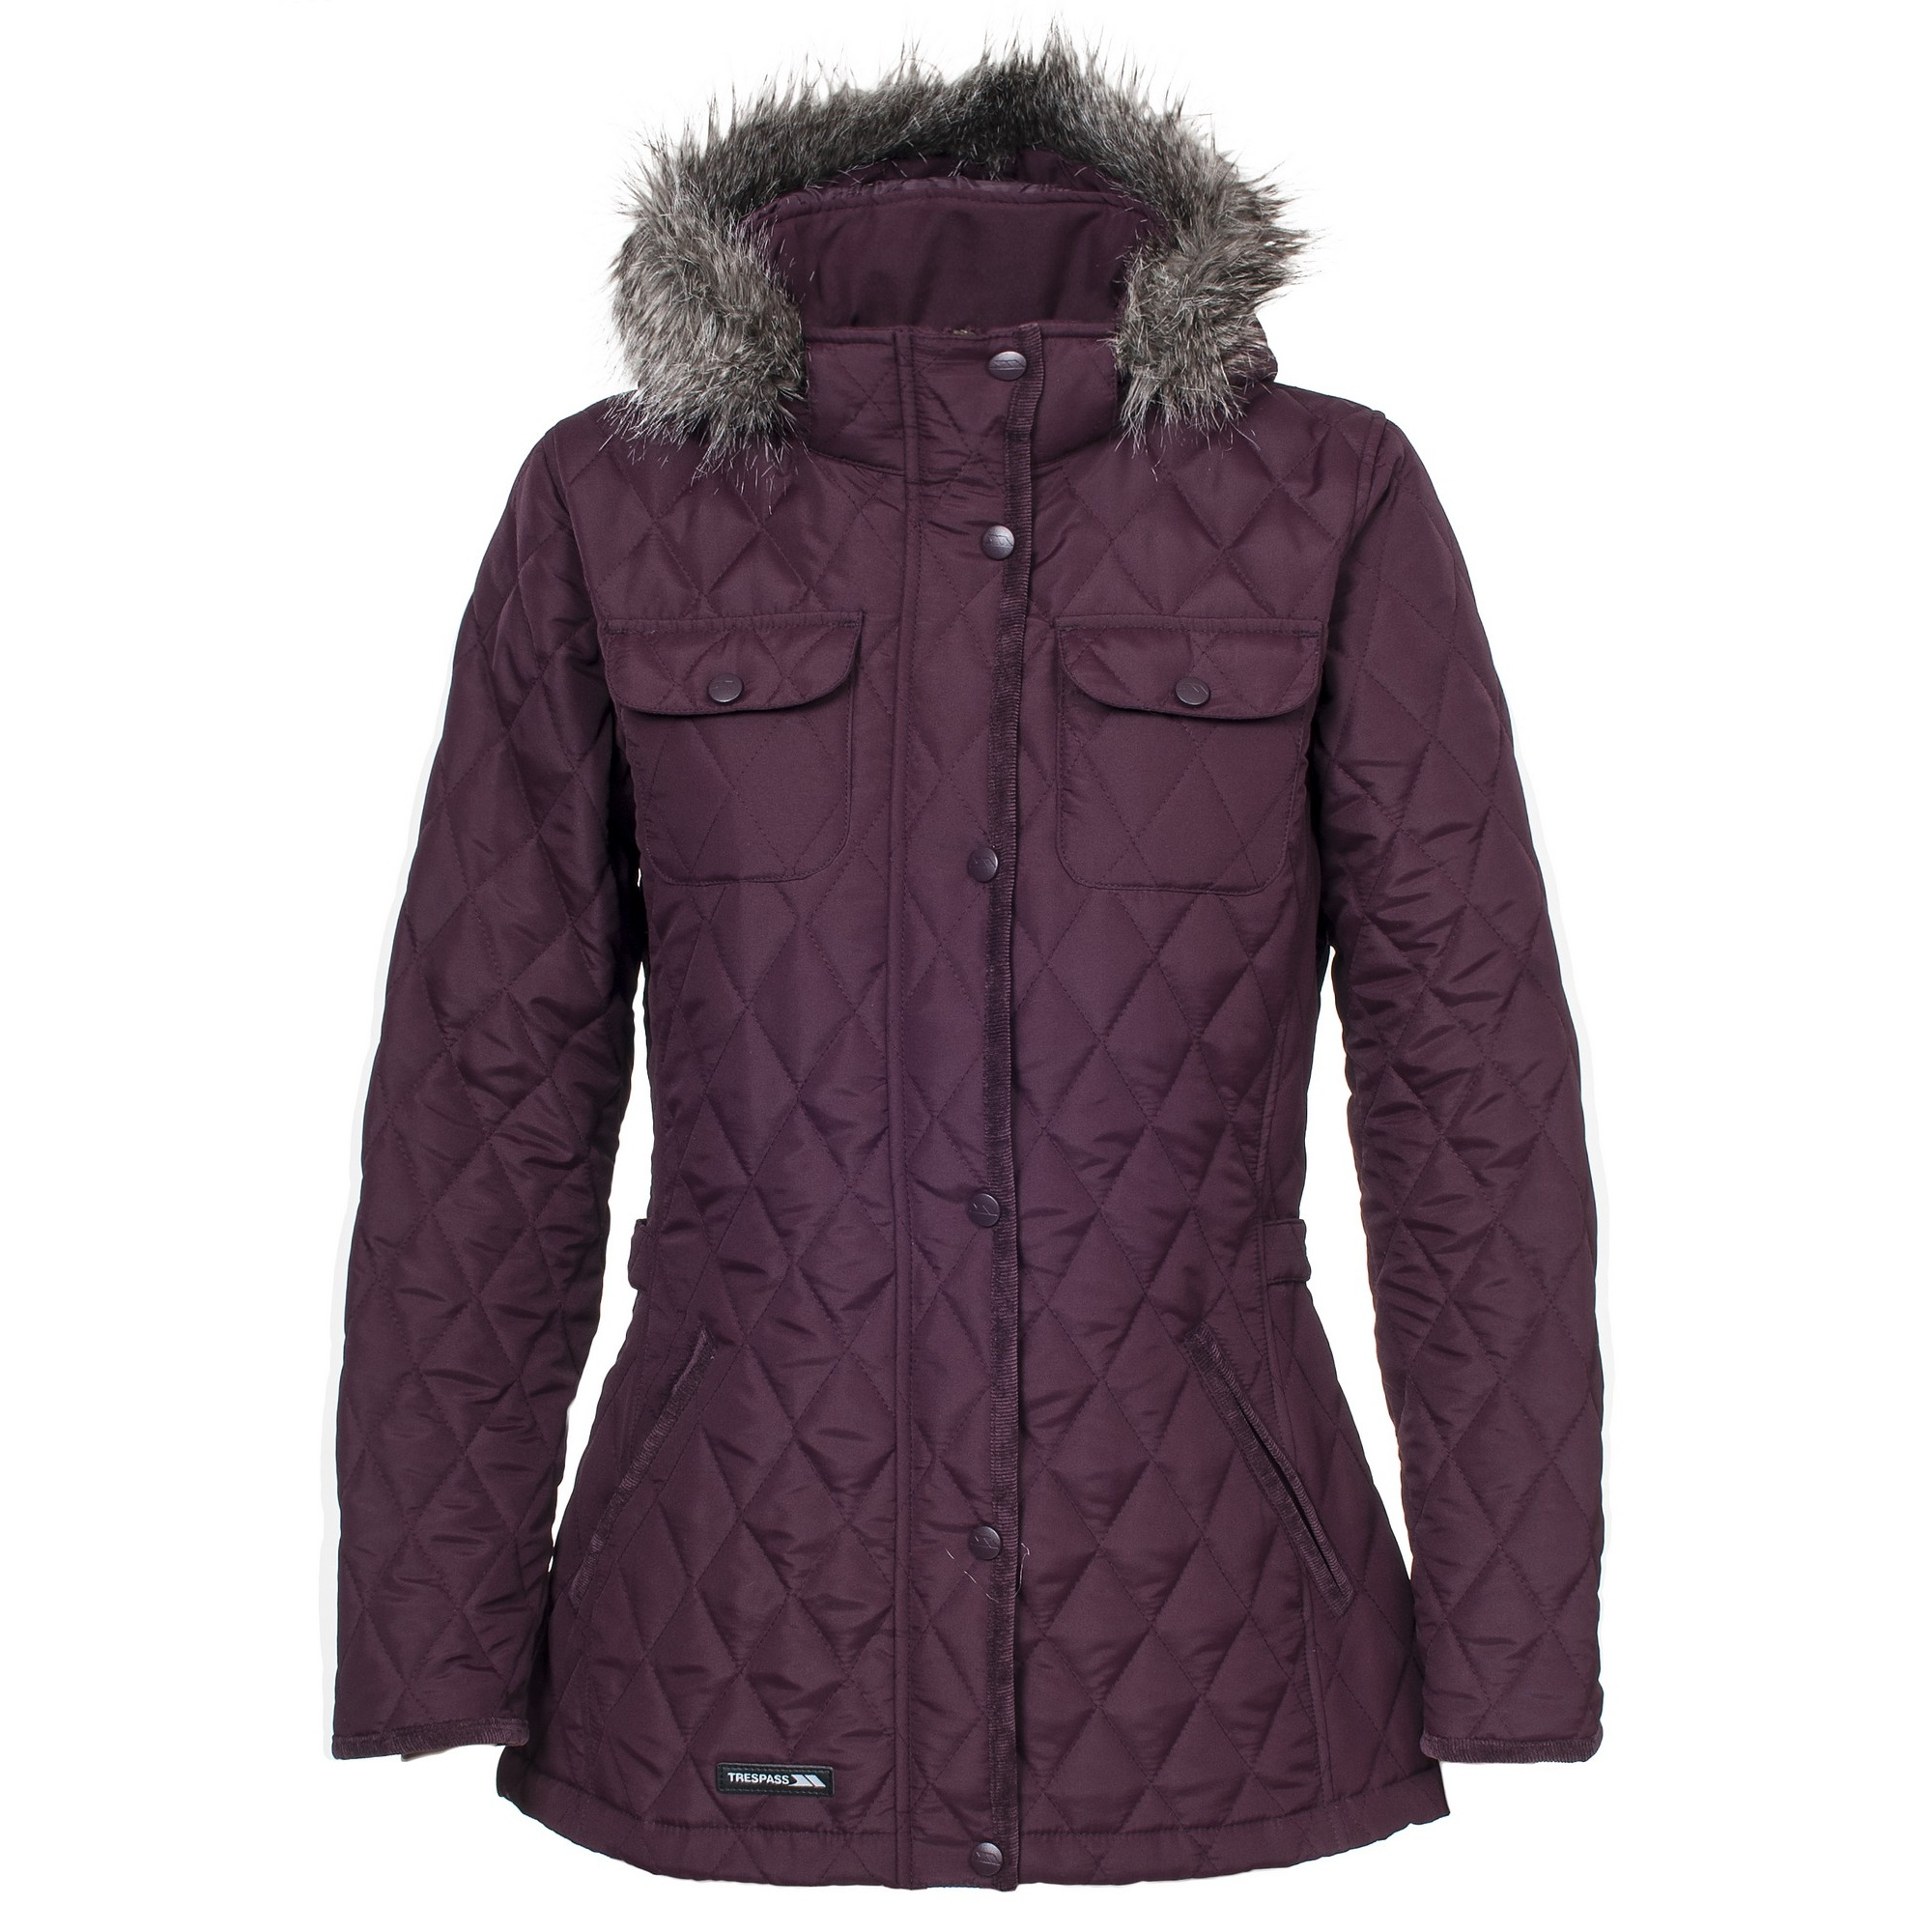 Women Warm and Padded Jackets are designed to keep you snug and comfortable whatever the weather throws at you, and always from the best known brands that provide quality at the right price.